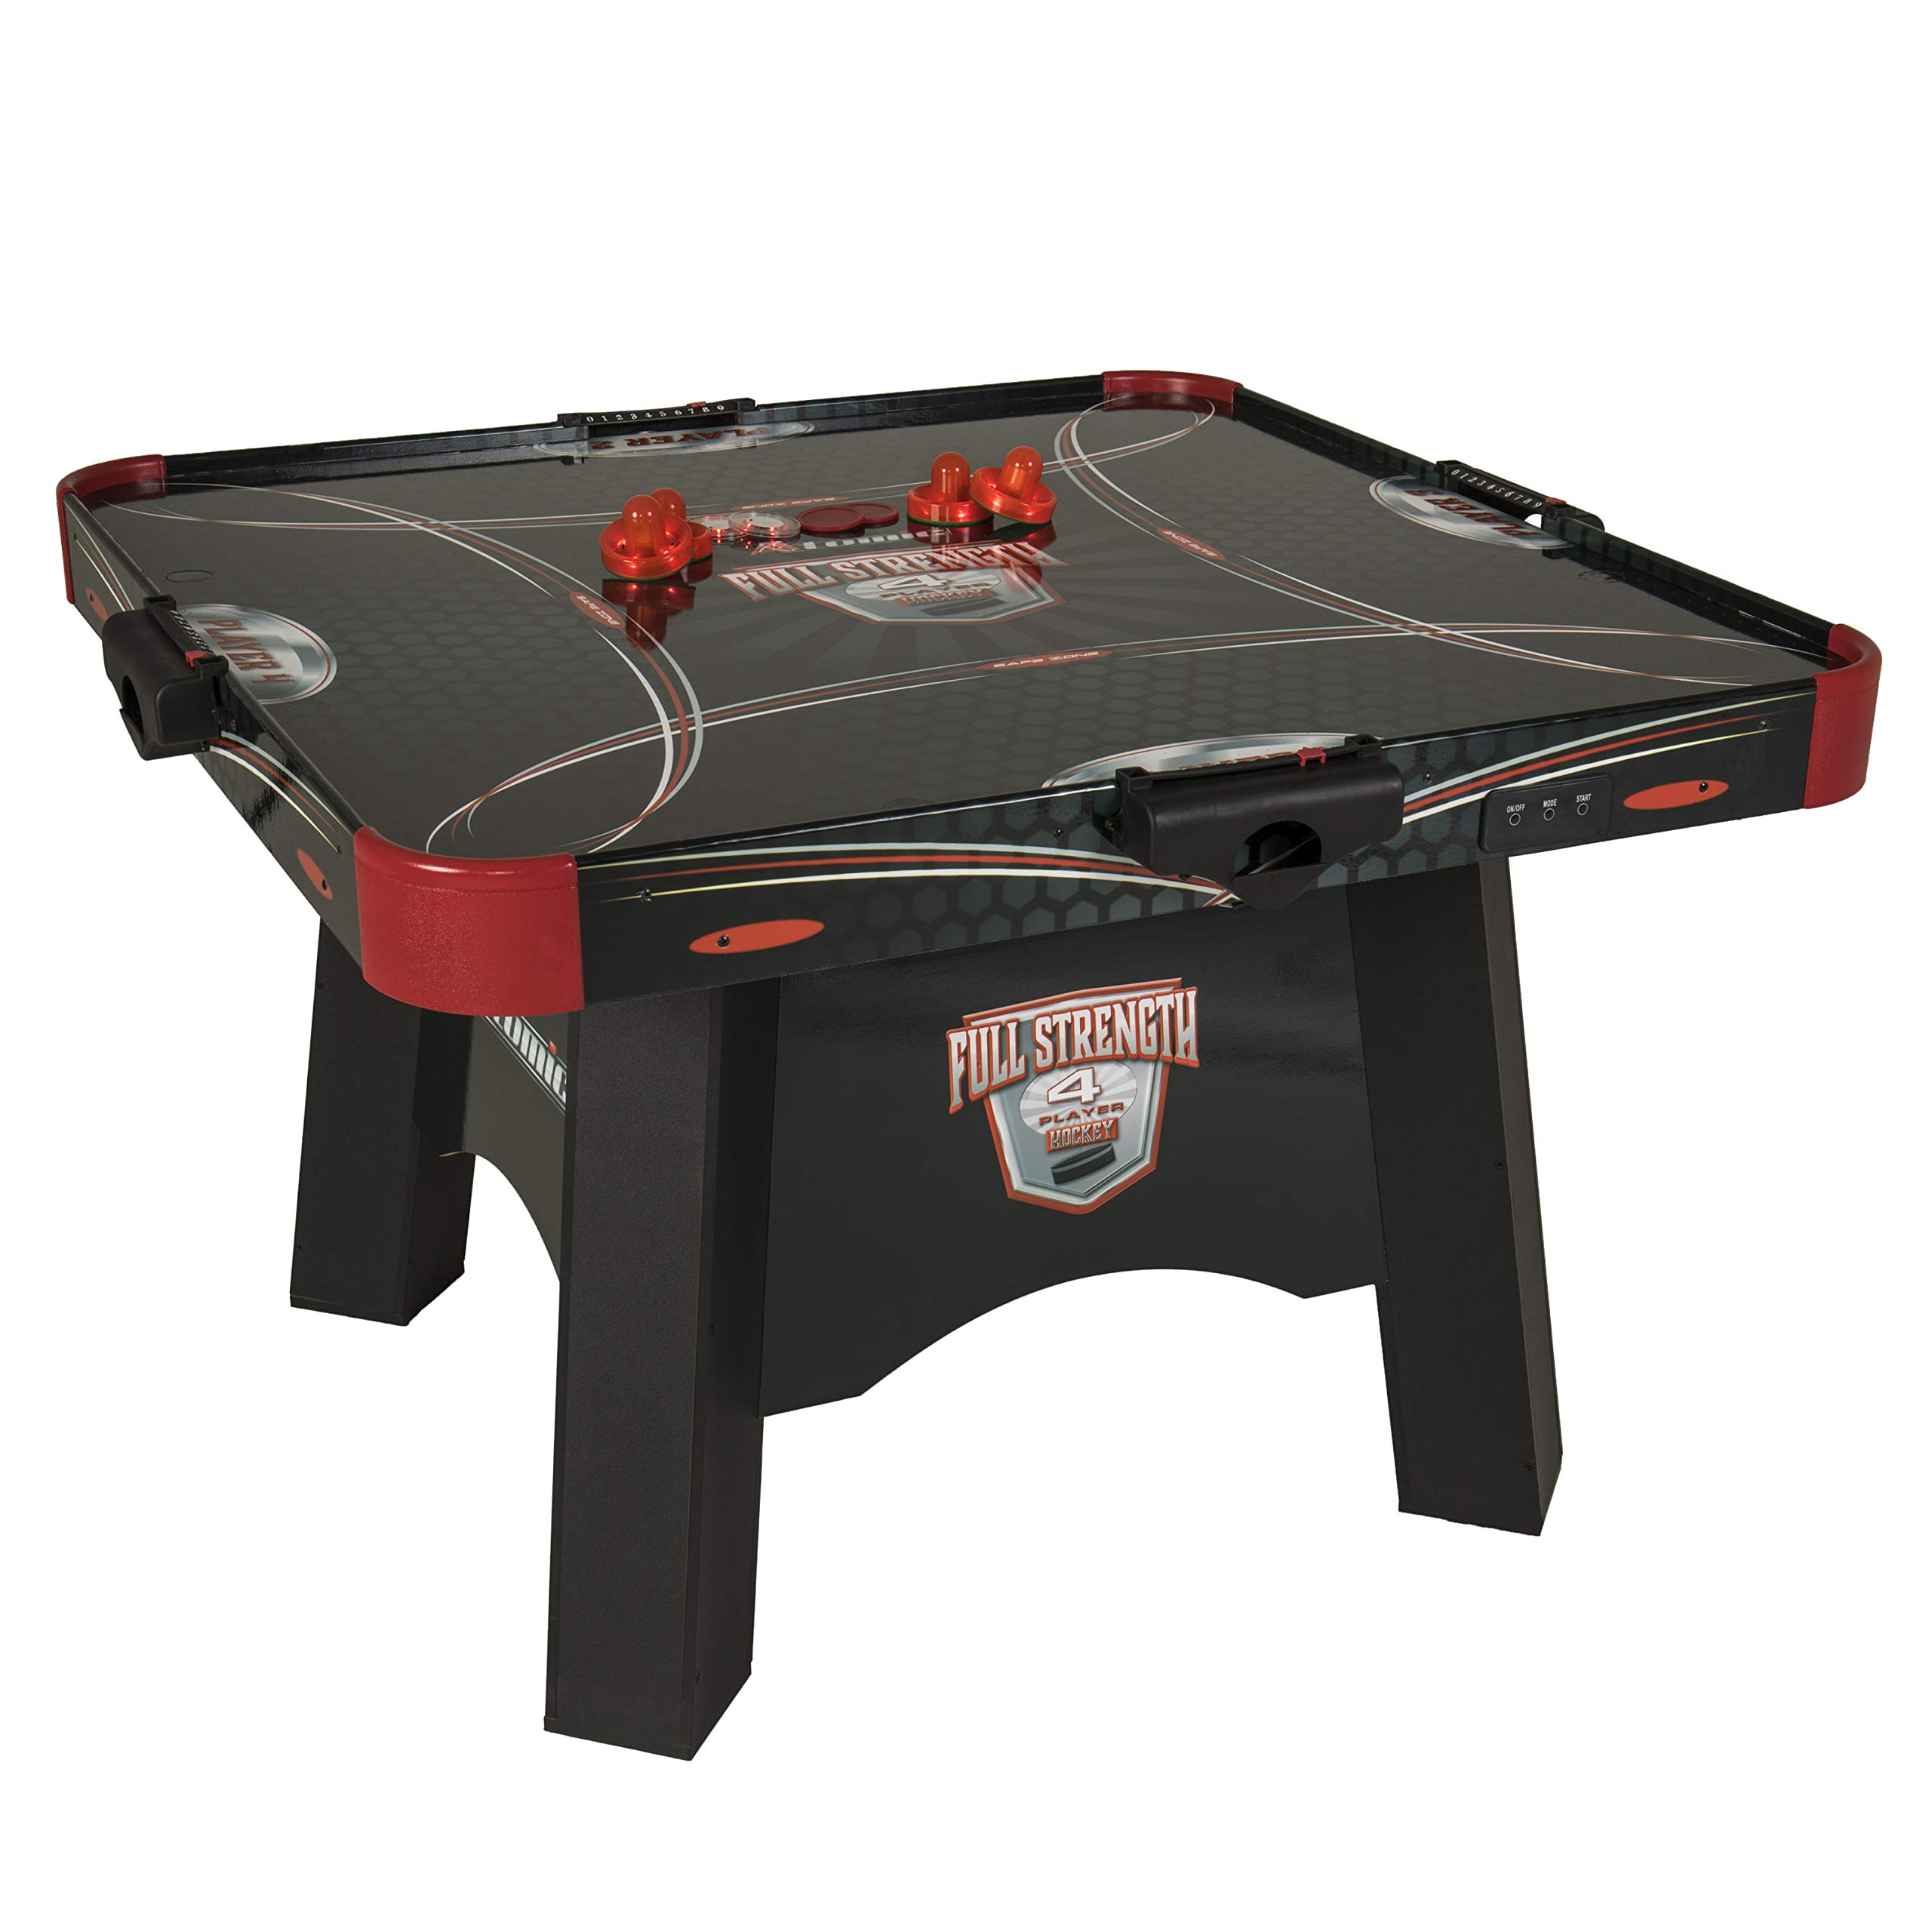 Atomic Full Strength 4-Player Air Powered Hockey Table with LED LIGHT UP Pucks and Pushers by Atomic